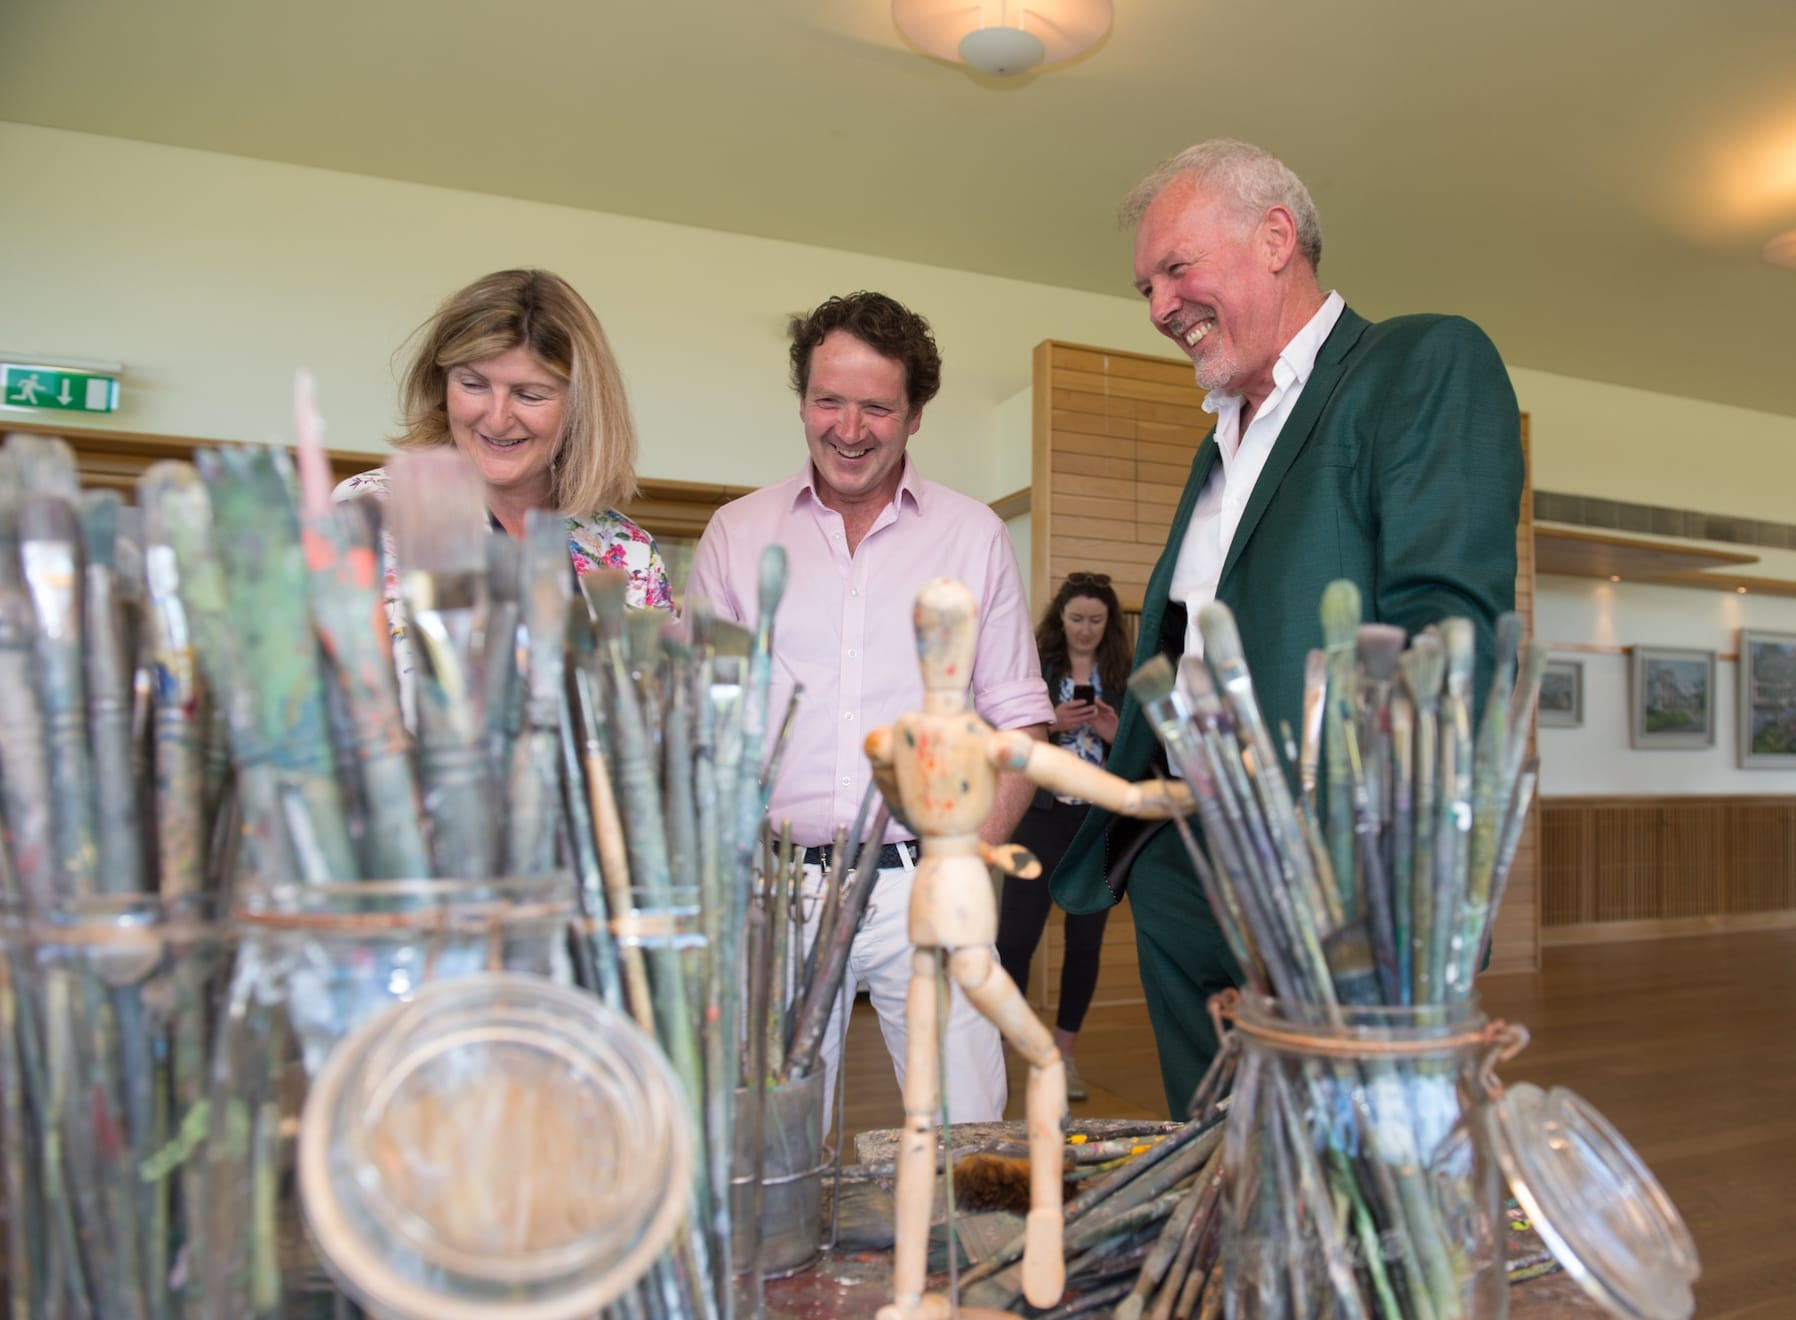 21 JUNE 2018 NATIONAL BOTANIC GARDENS OF IRELAND, DUBLIN Gerard Byrne with Justine Keane and Diarmuid Gavin Inside Outside & Beyond exhibition launch photo: Barry Cronin